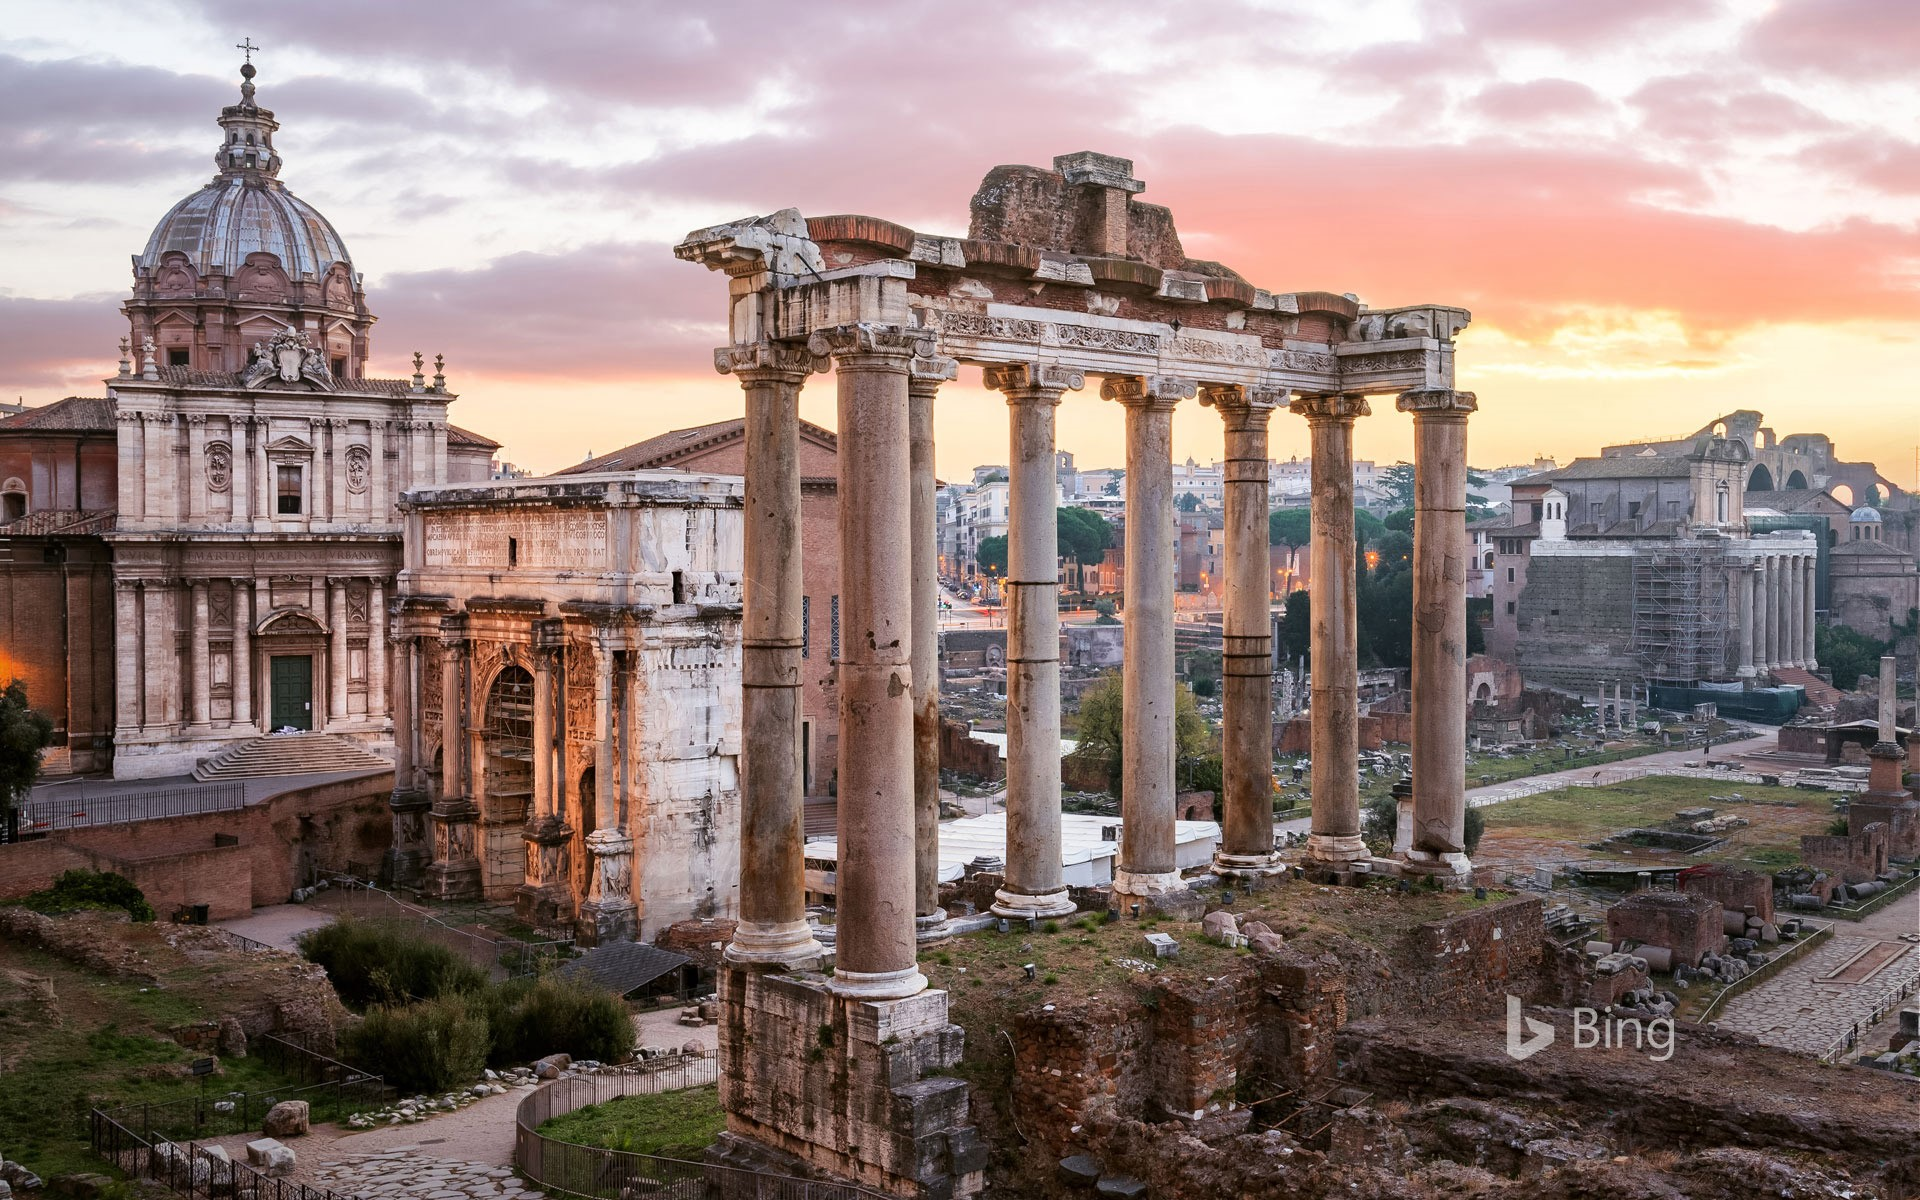 Temple of Saturn in the Roman Forum, Italy